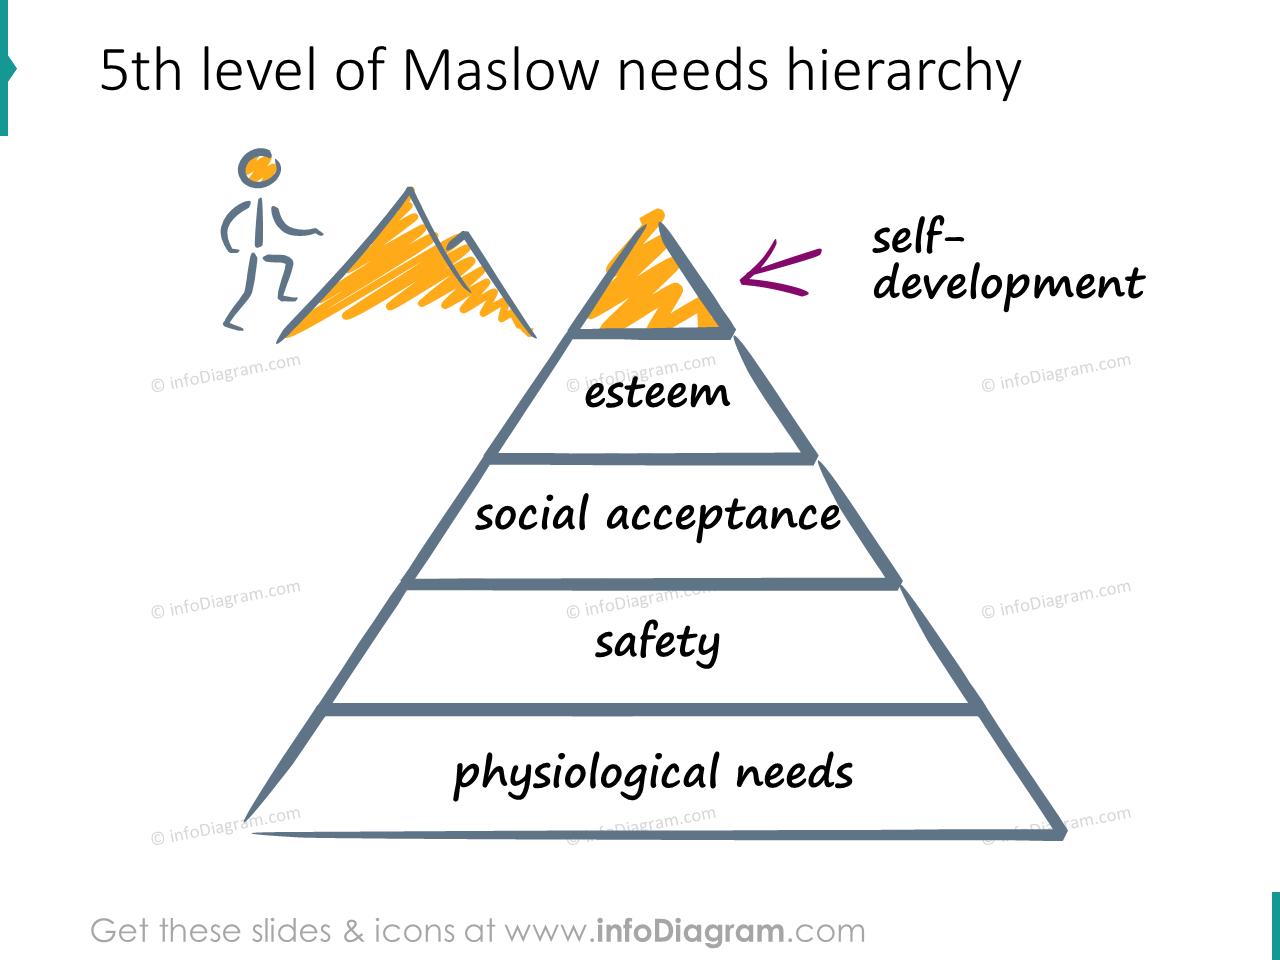 self development need maslow hierarchy scribble icons ppt clipart